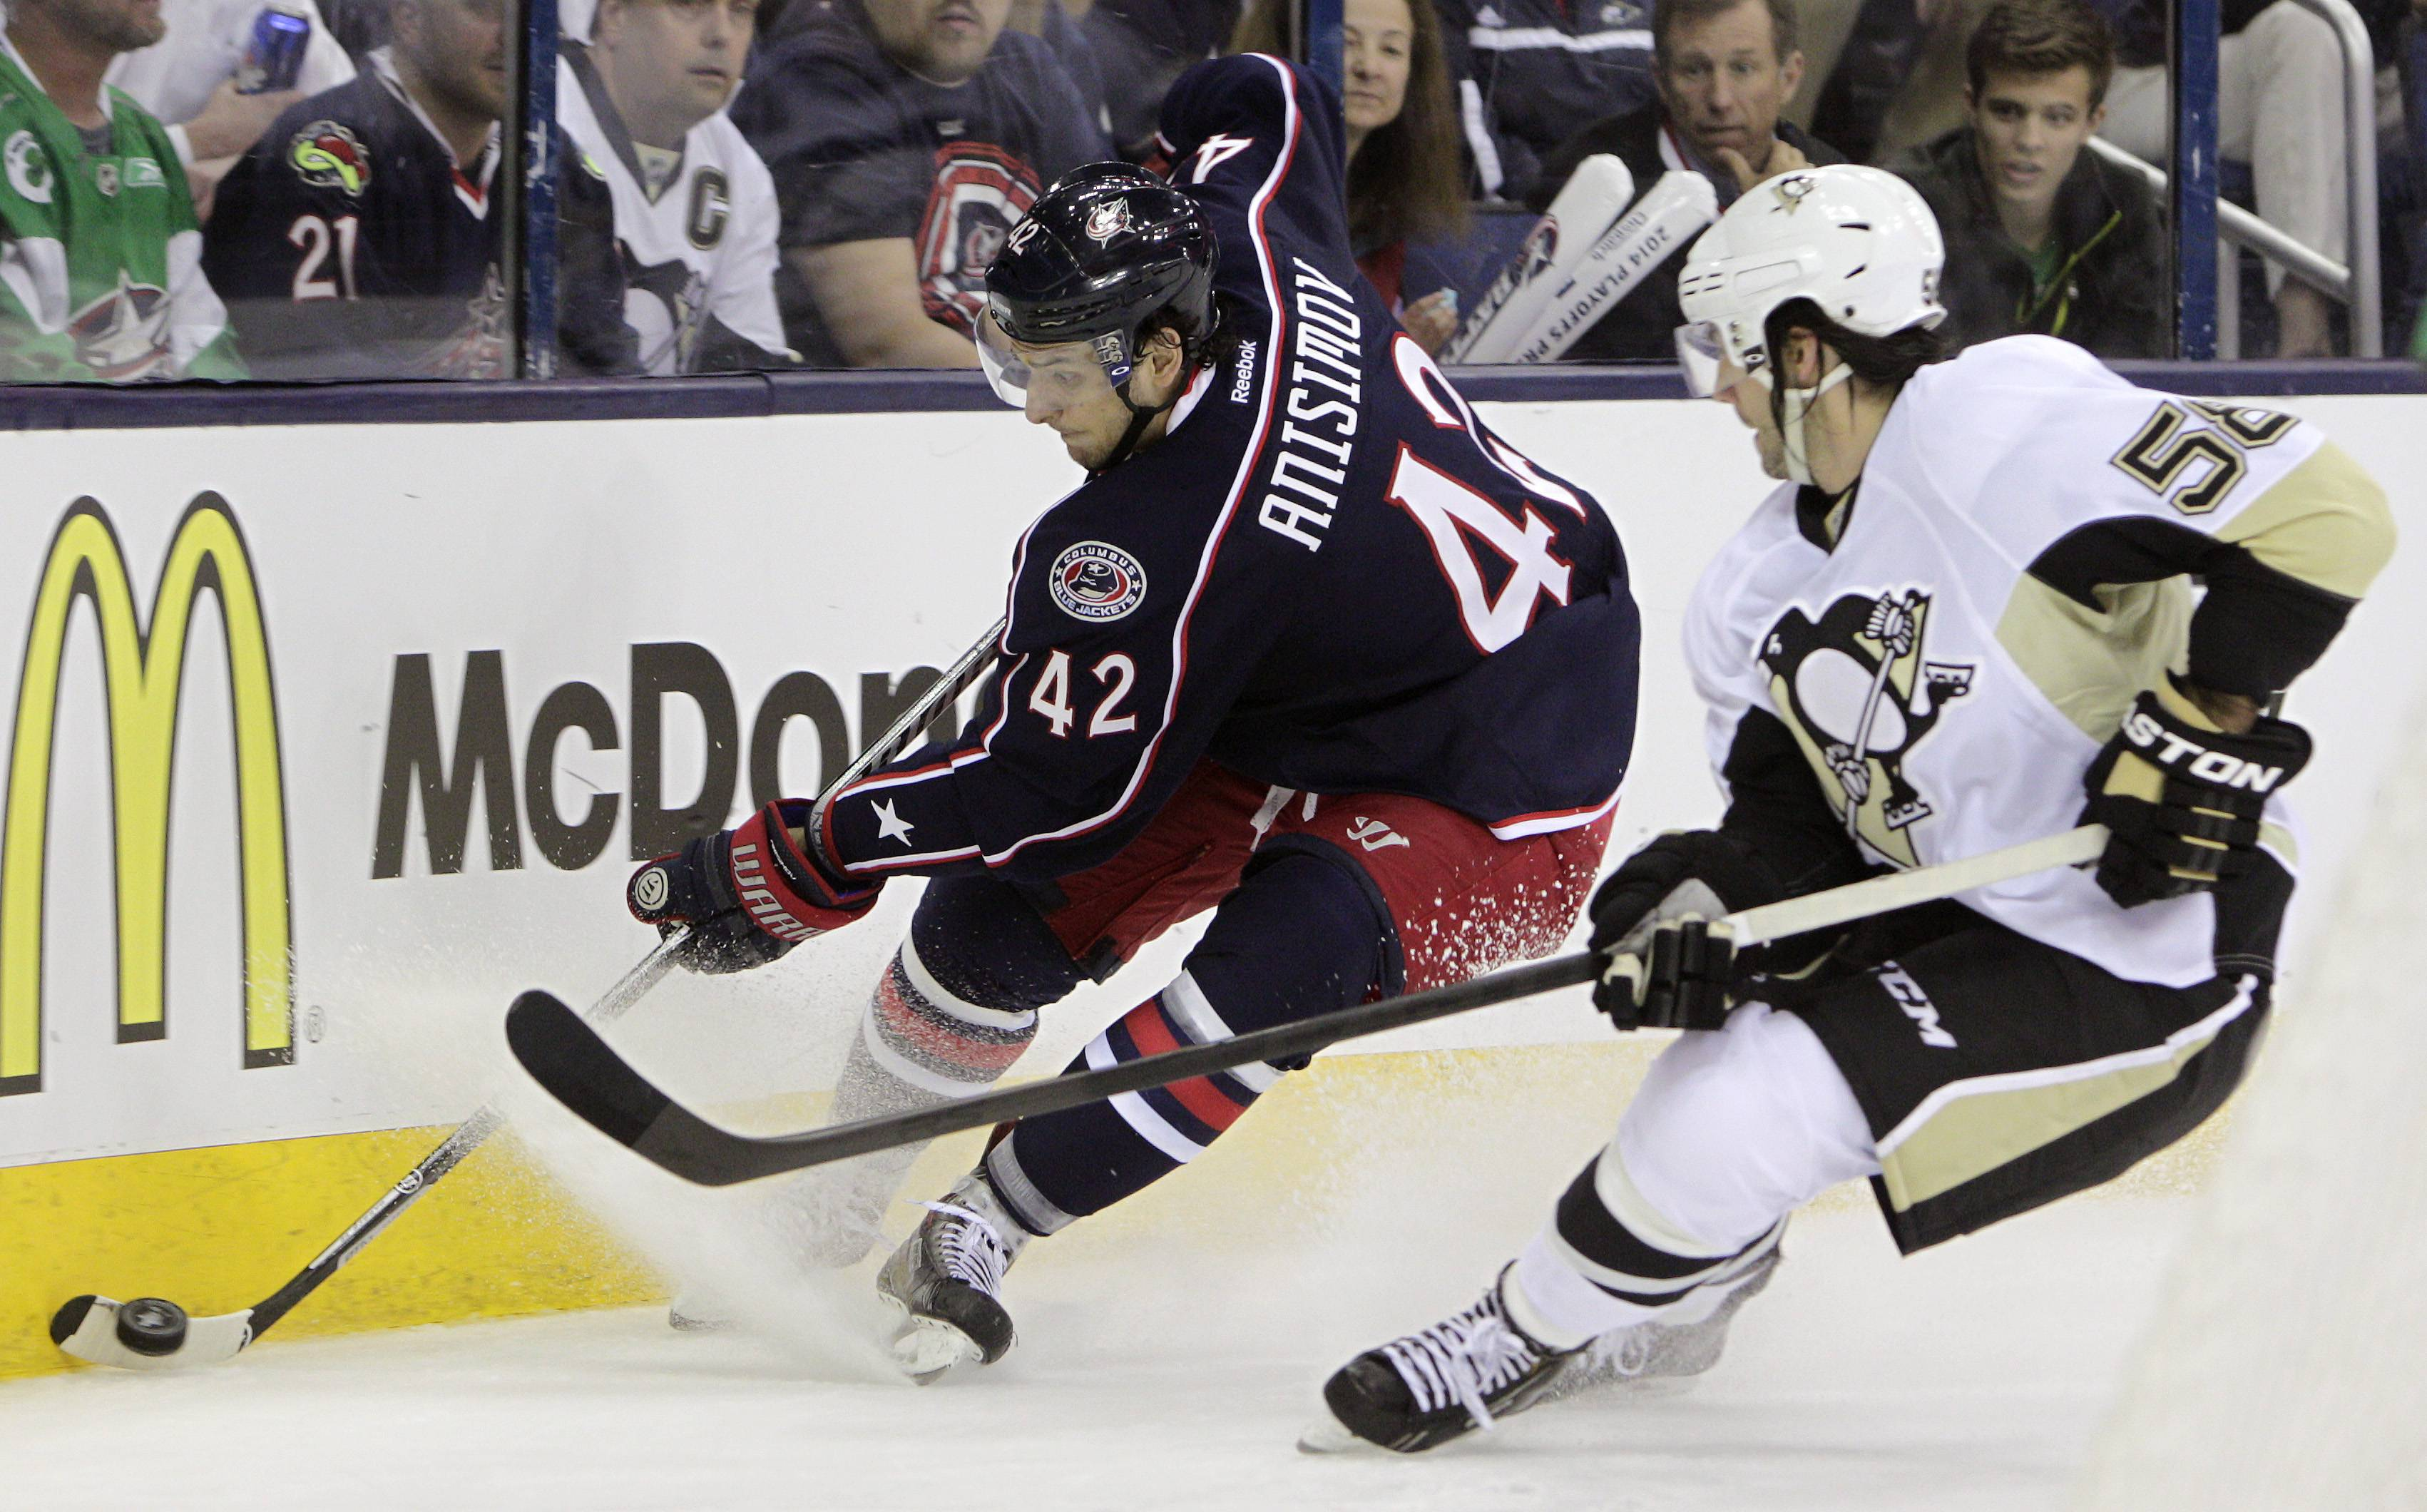 Columbus Blue Jackets' Artem Anisimov, left, of Russia, tries to clear the puck as Pittsburgh Penguins' Kris Letang defends during the second period of a first-round NHL playoff hockey game Monday, April 21, 2014, in Columbus, Ohio.